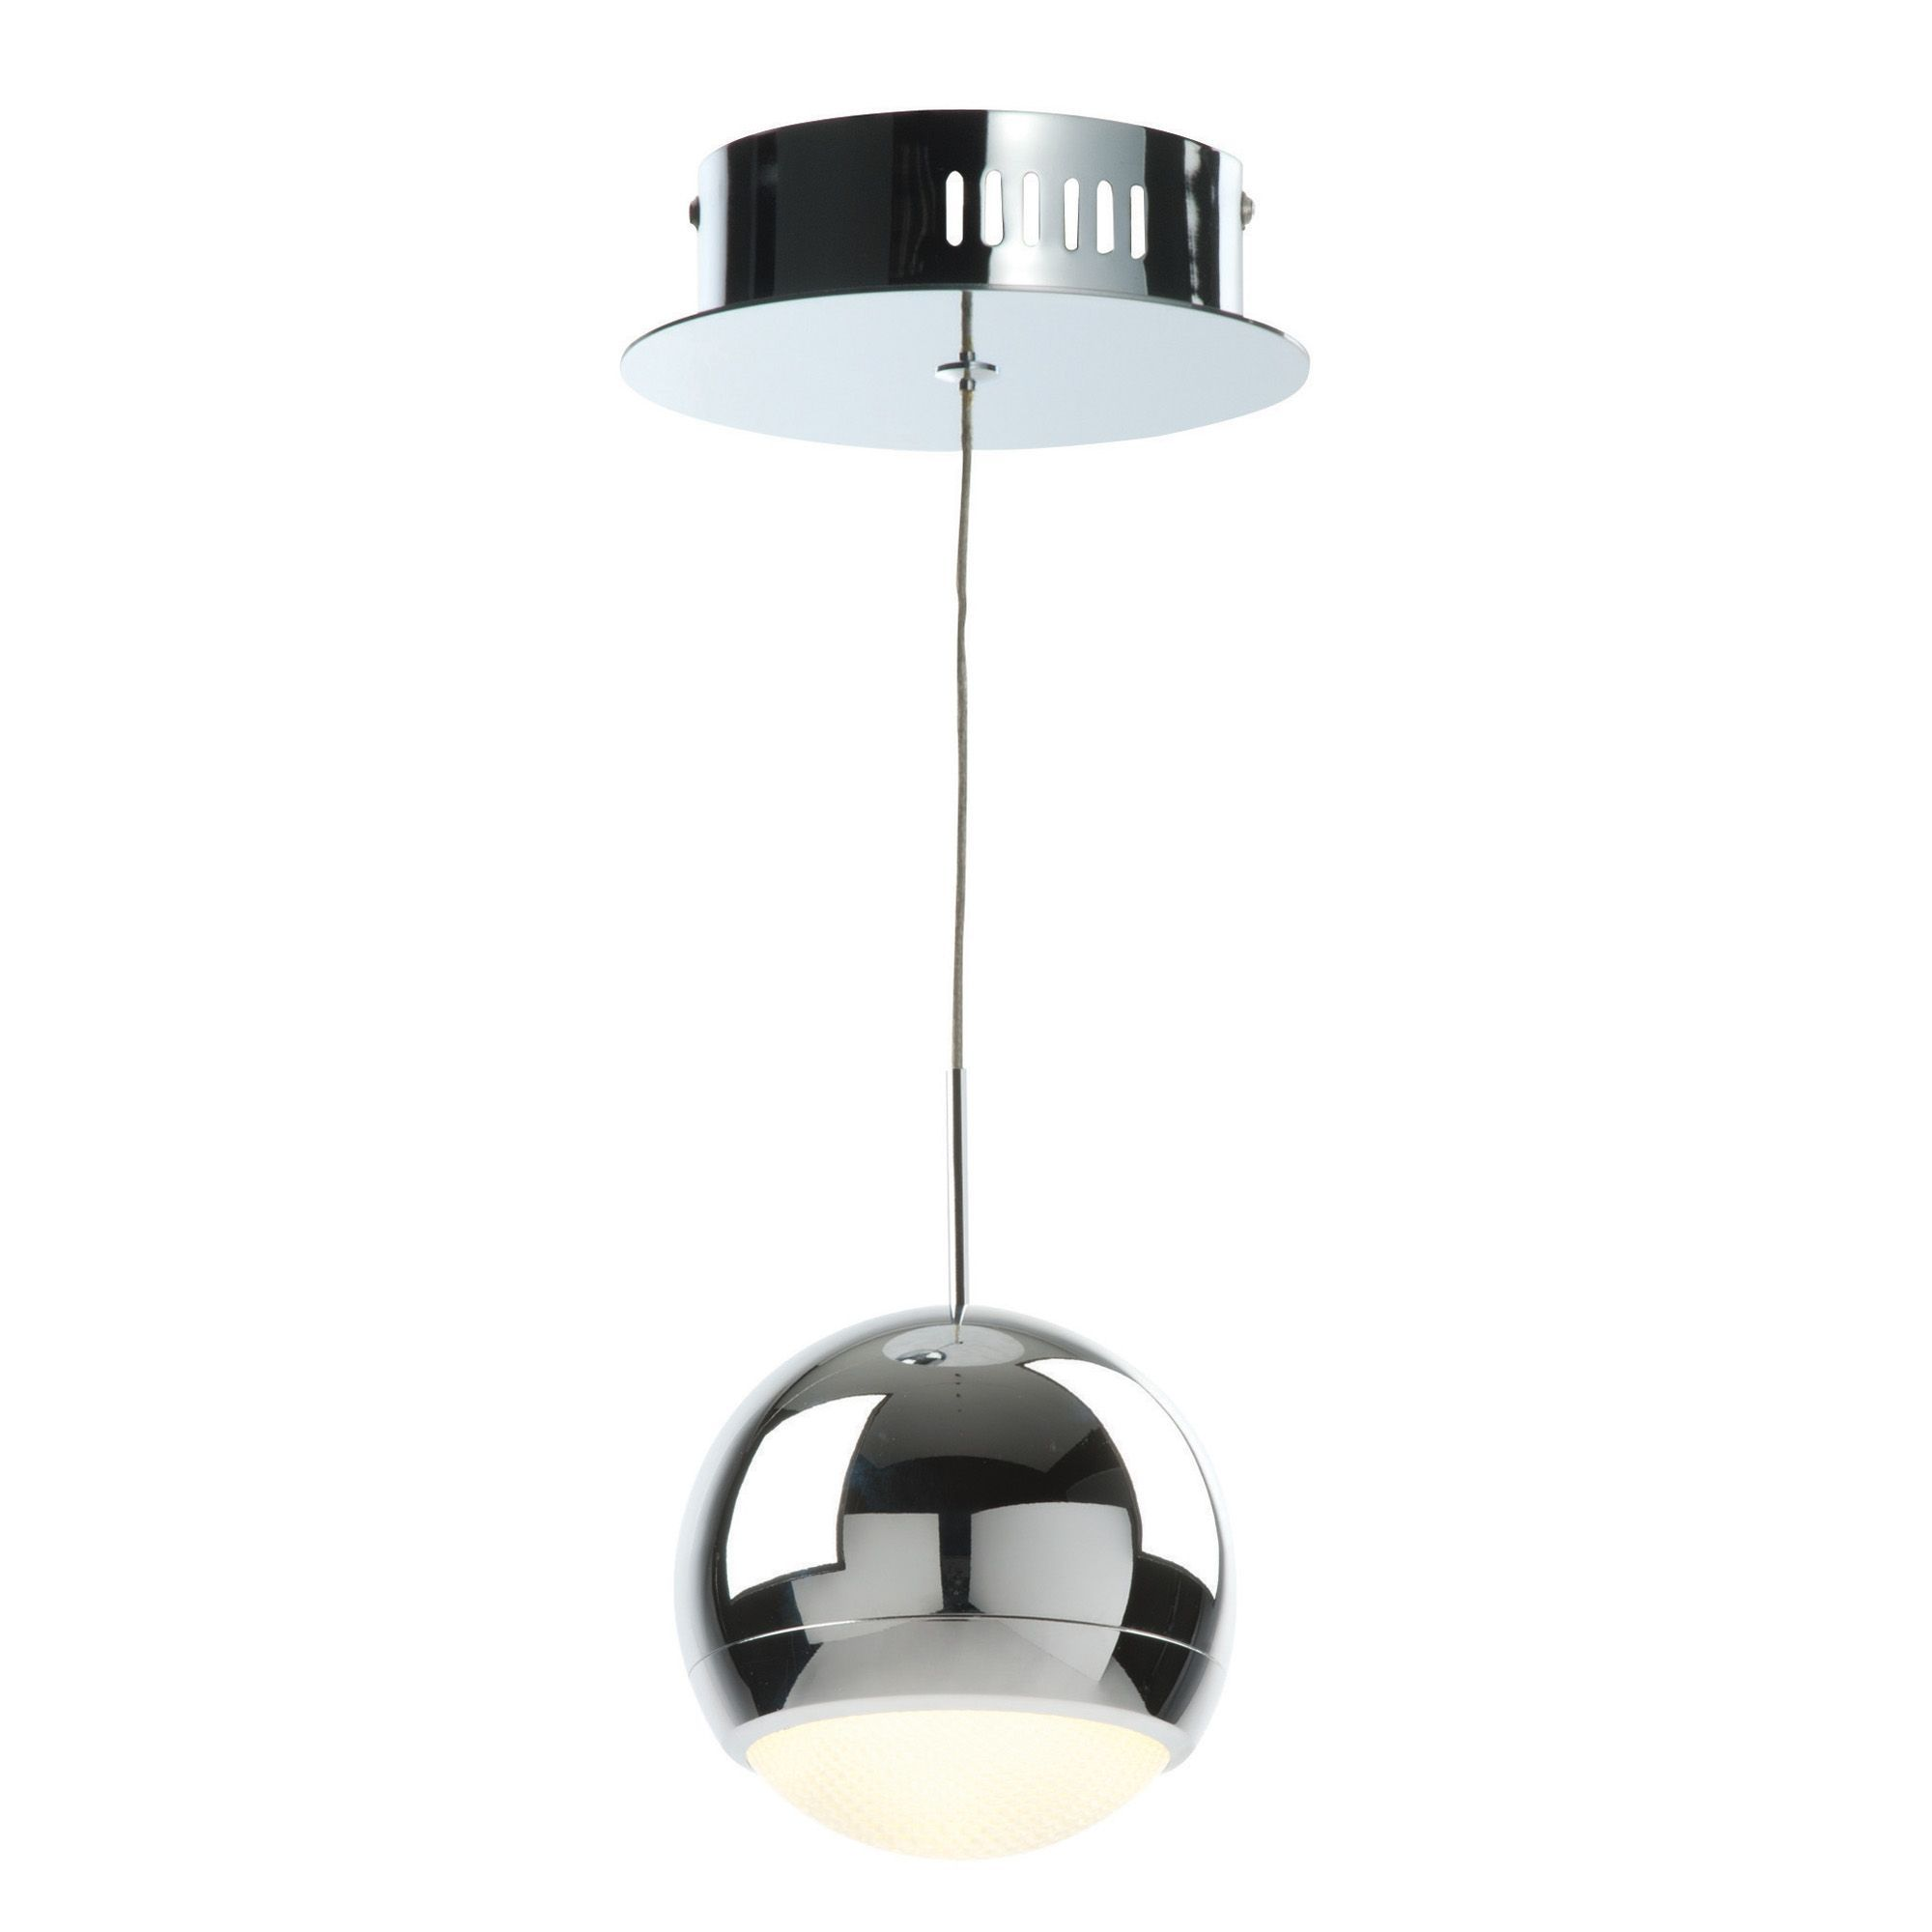 Pluto Chrome Effect Pendant Ceiling Light Glass PendantsLiving Room IdeasCeiling